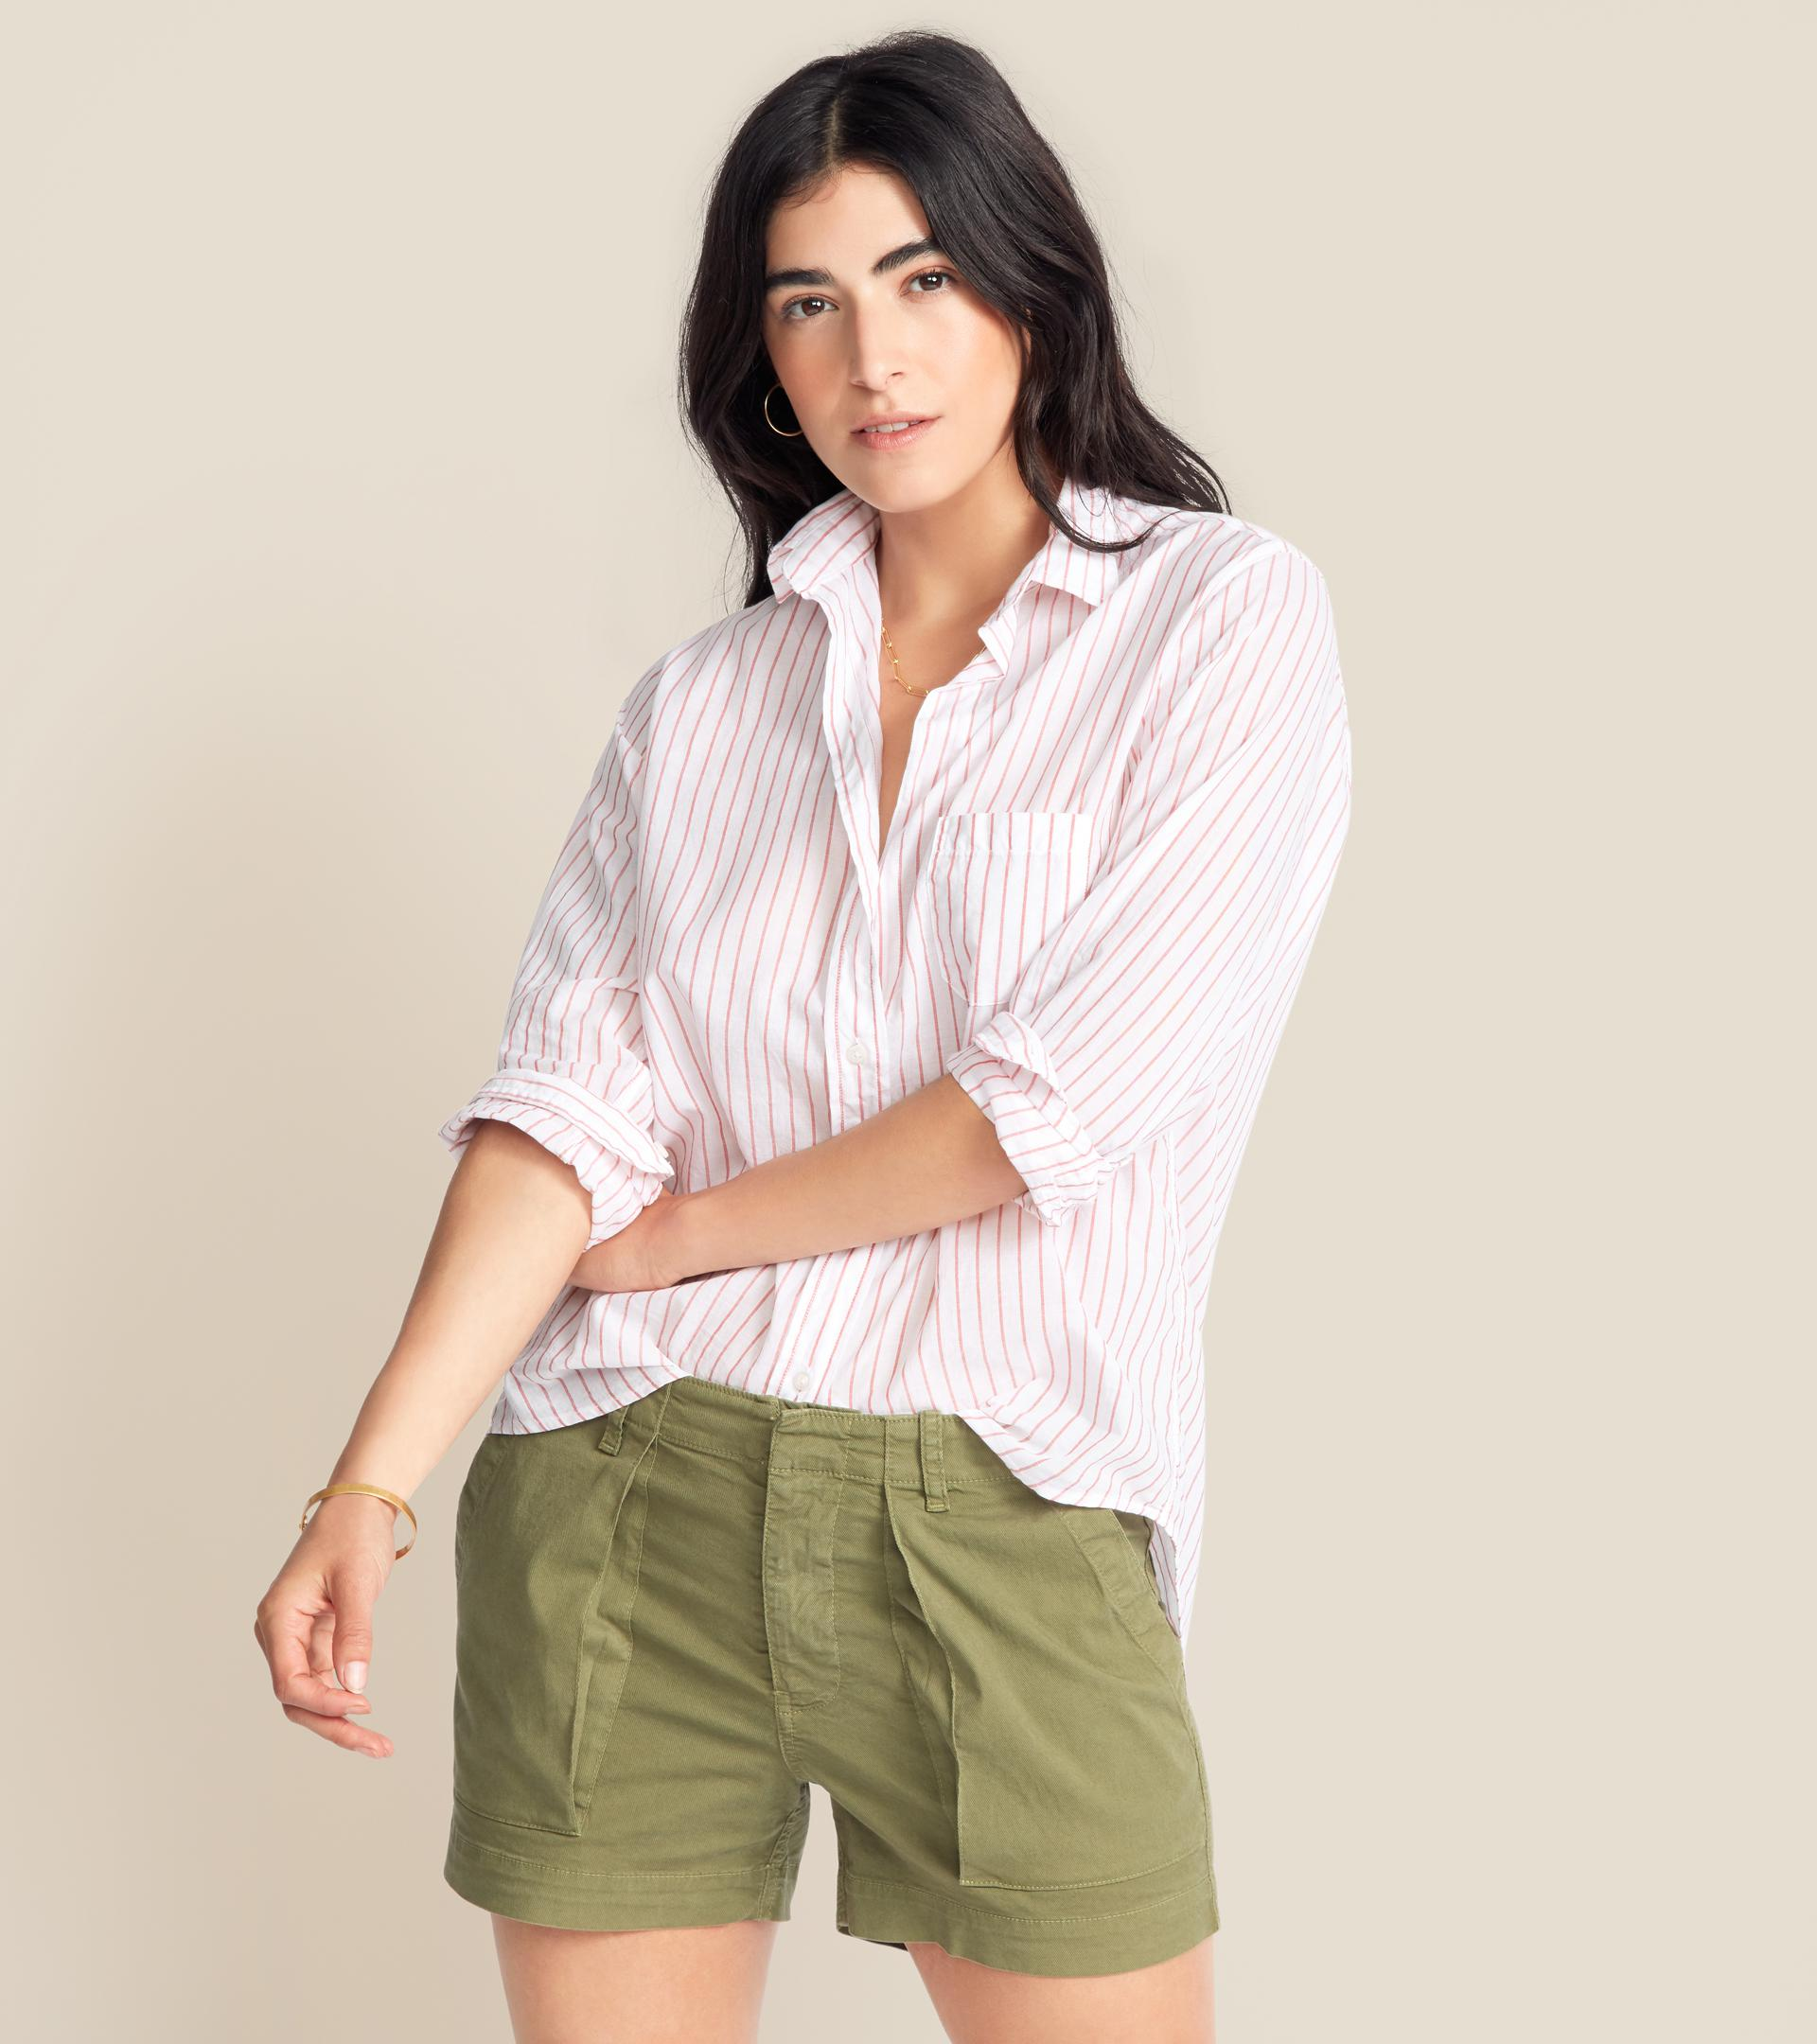 The Hero Button-Up Shirt Red Stripes, Tissue Cotton